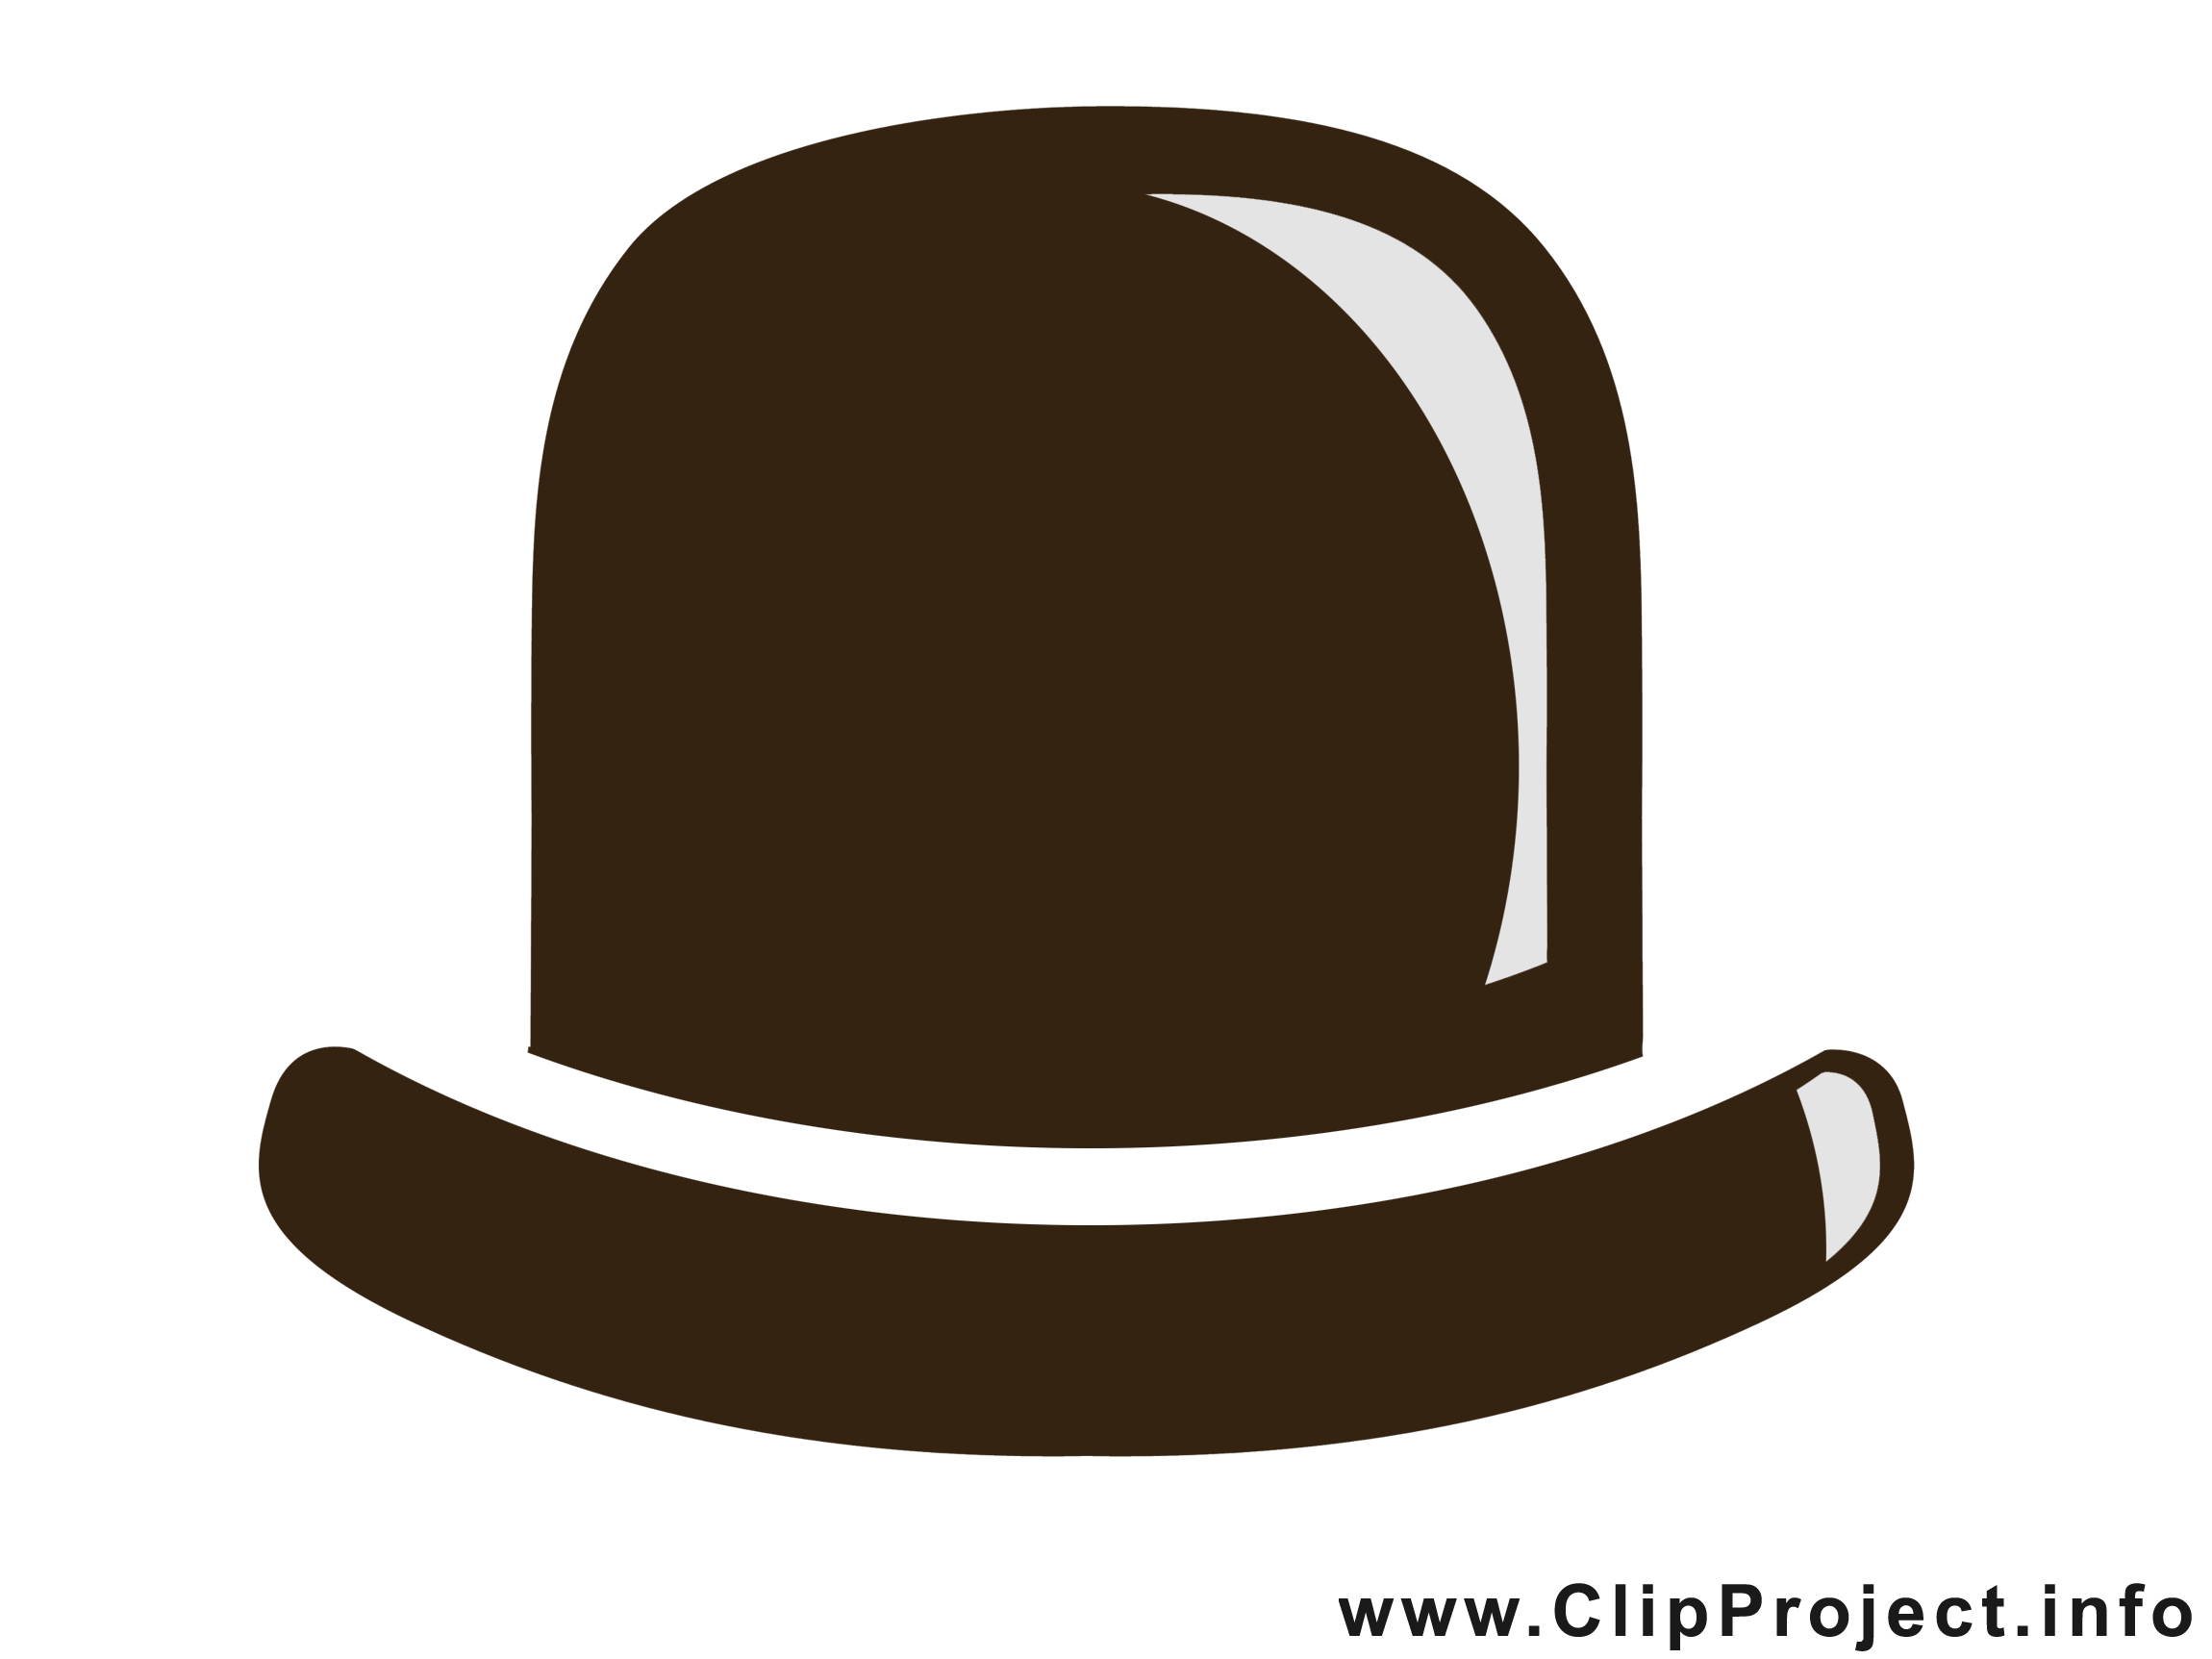 Hut clipart derby hat #11